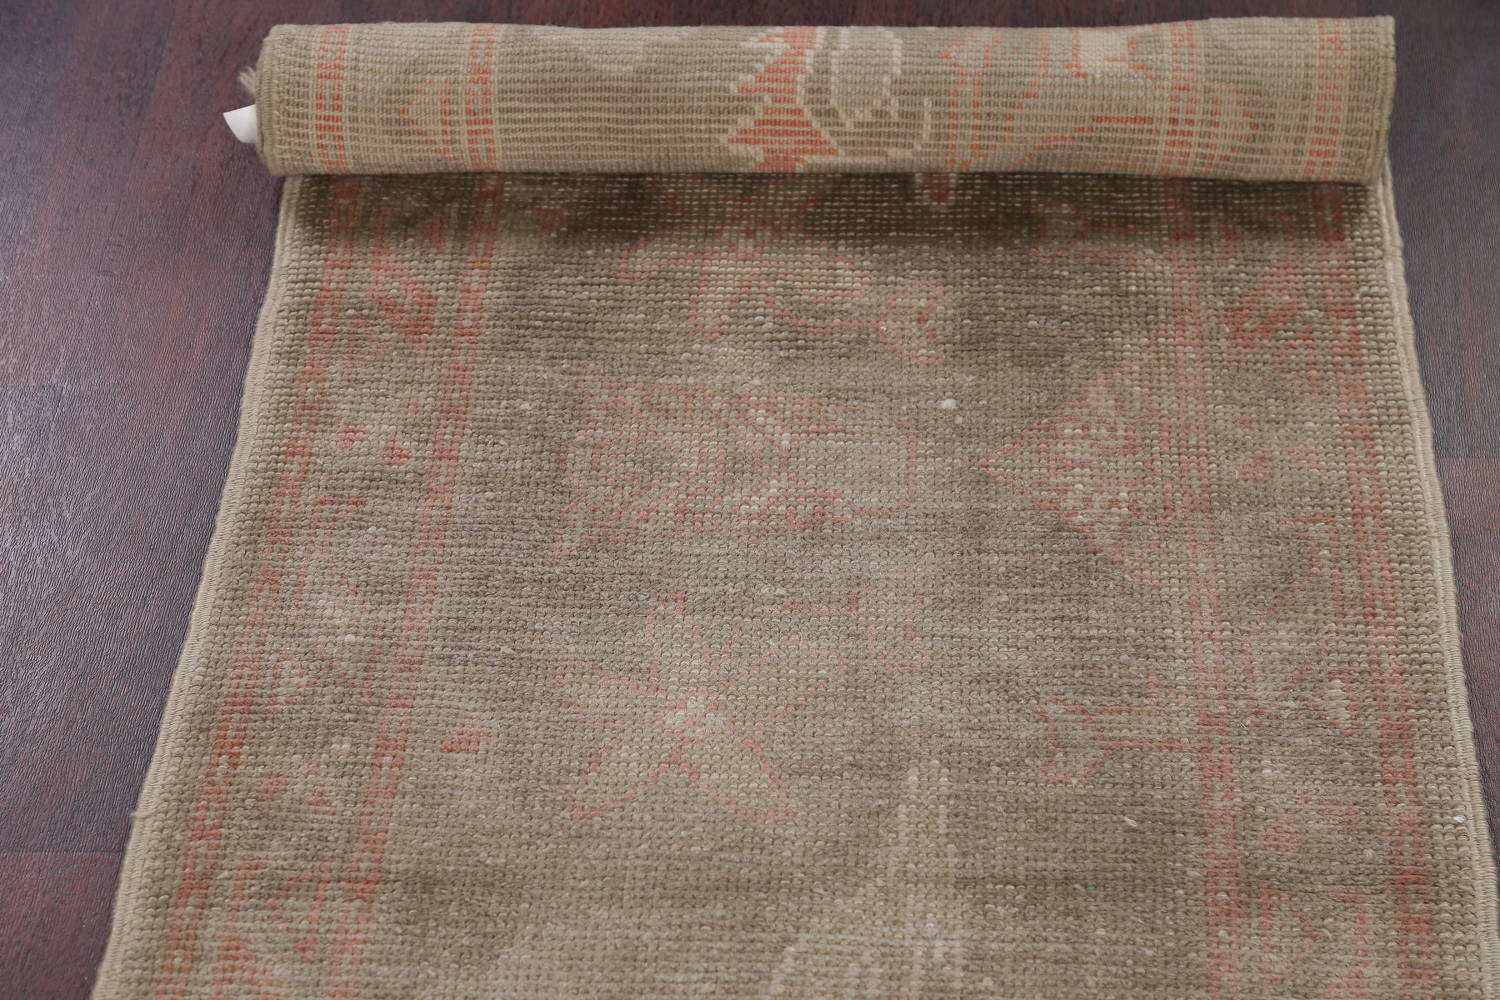 Vegetable Dye Muted Green Oushak Turkish Hand-Knotted Runner Rug 2x12 image 16